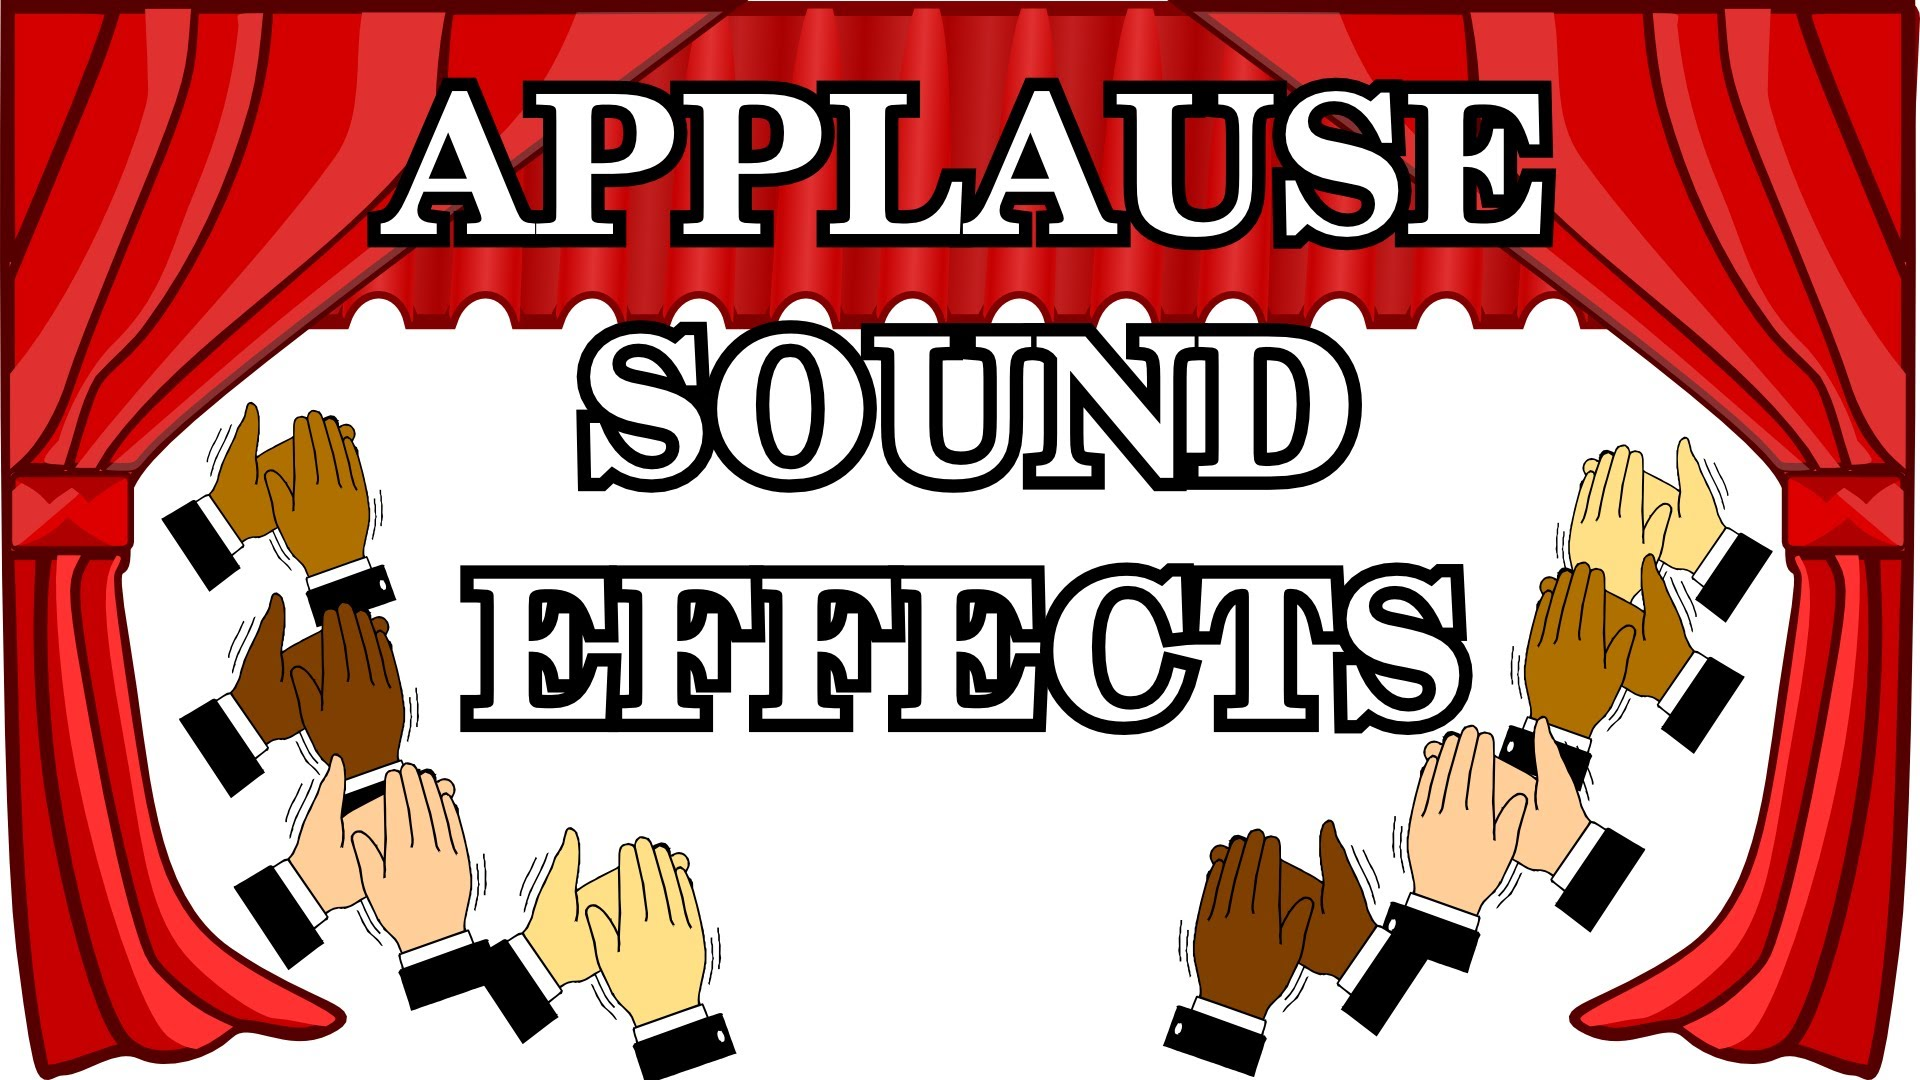 Moving clipart applause Applause Clipart Applause Sound Sound